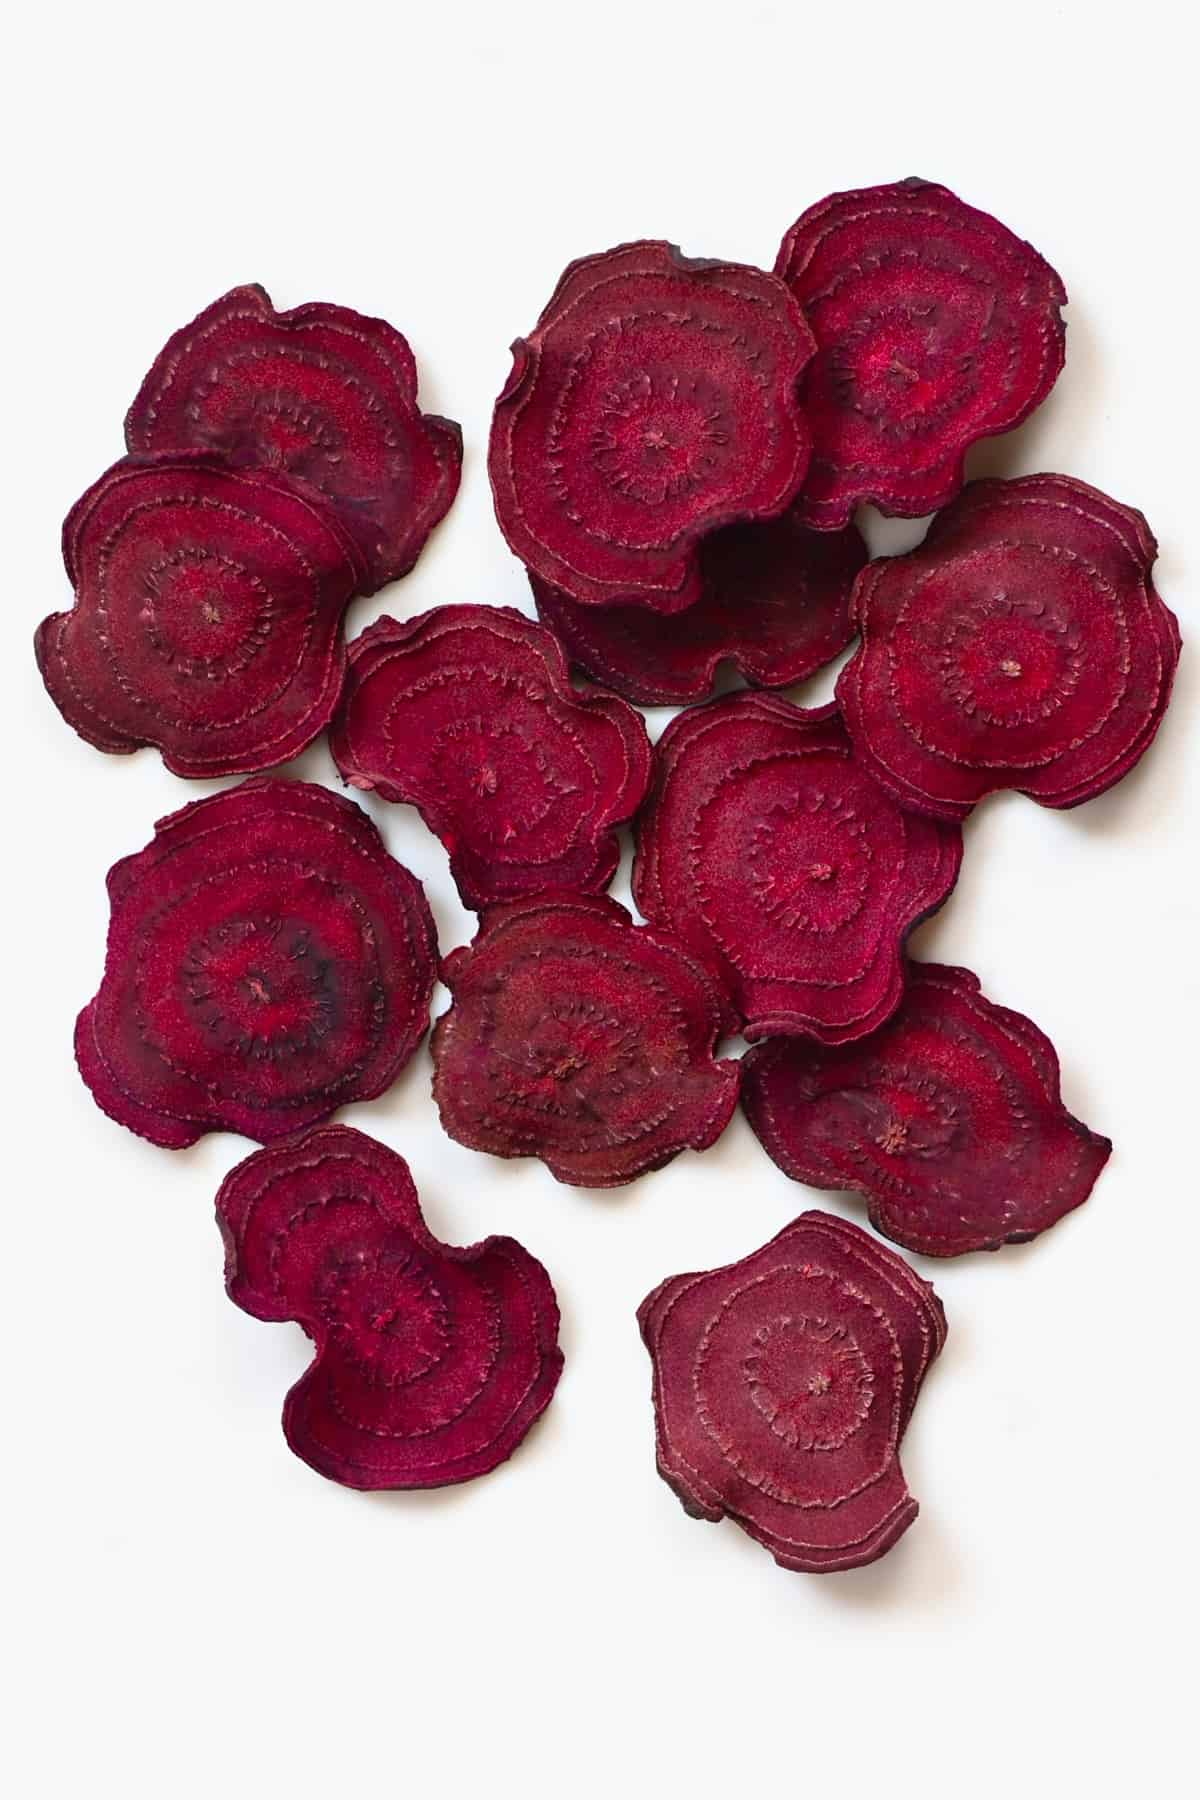 Homemade beetroot chips on a white surface